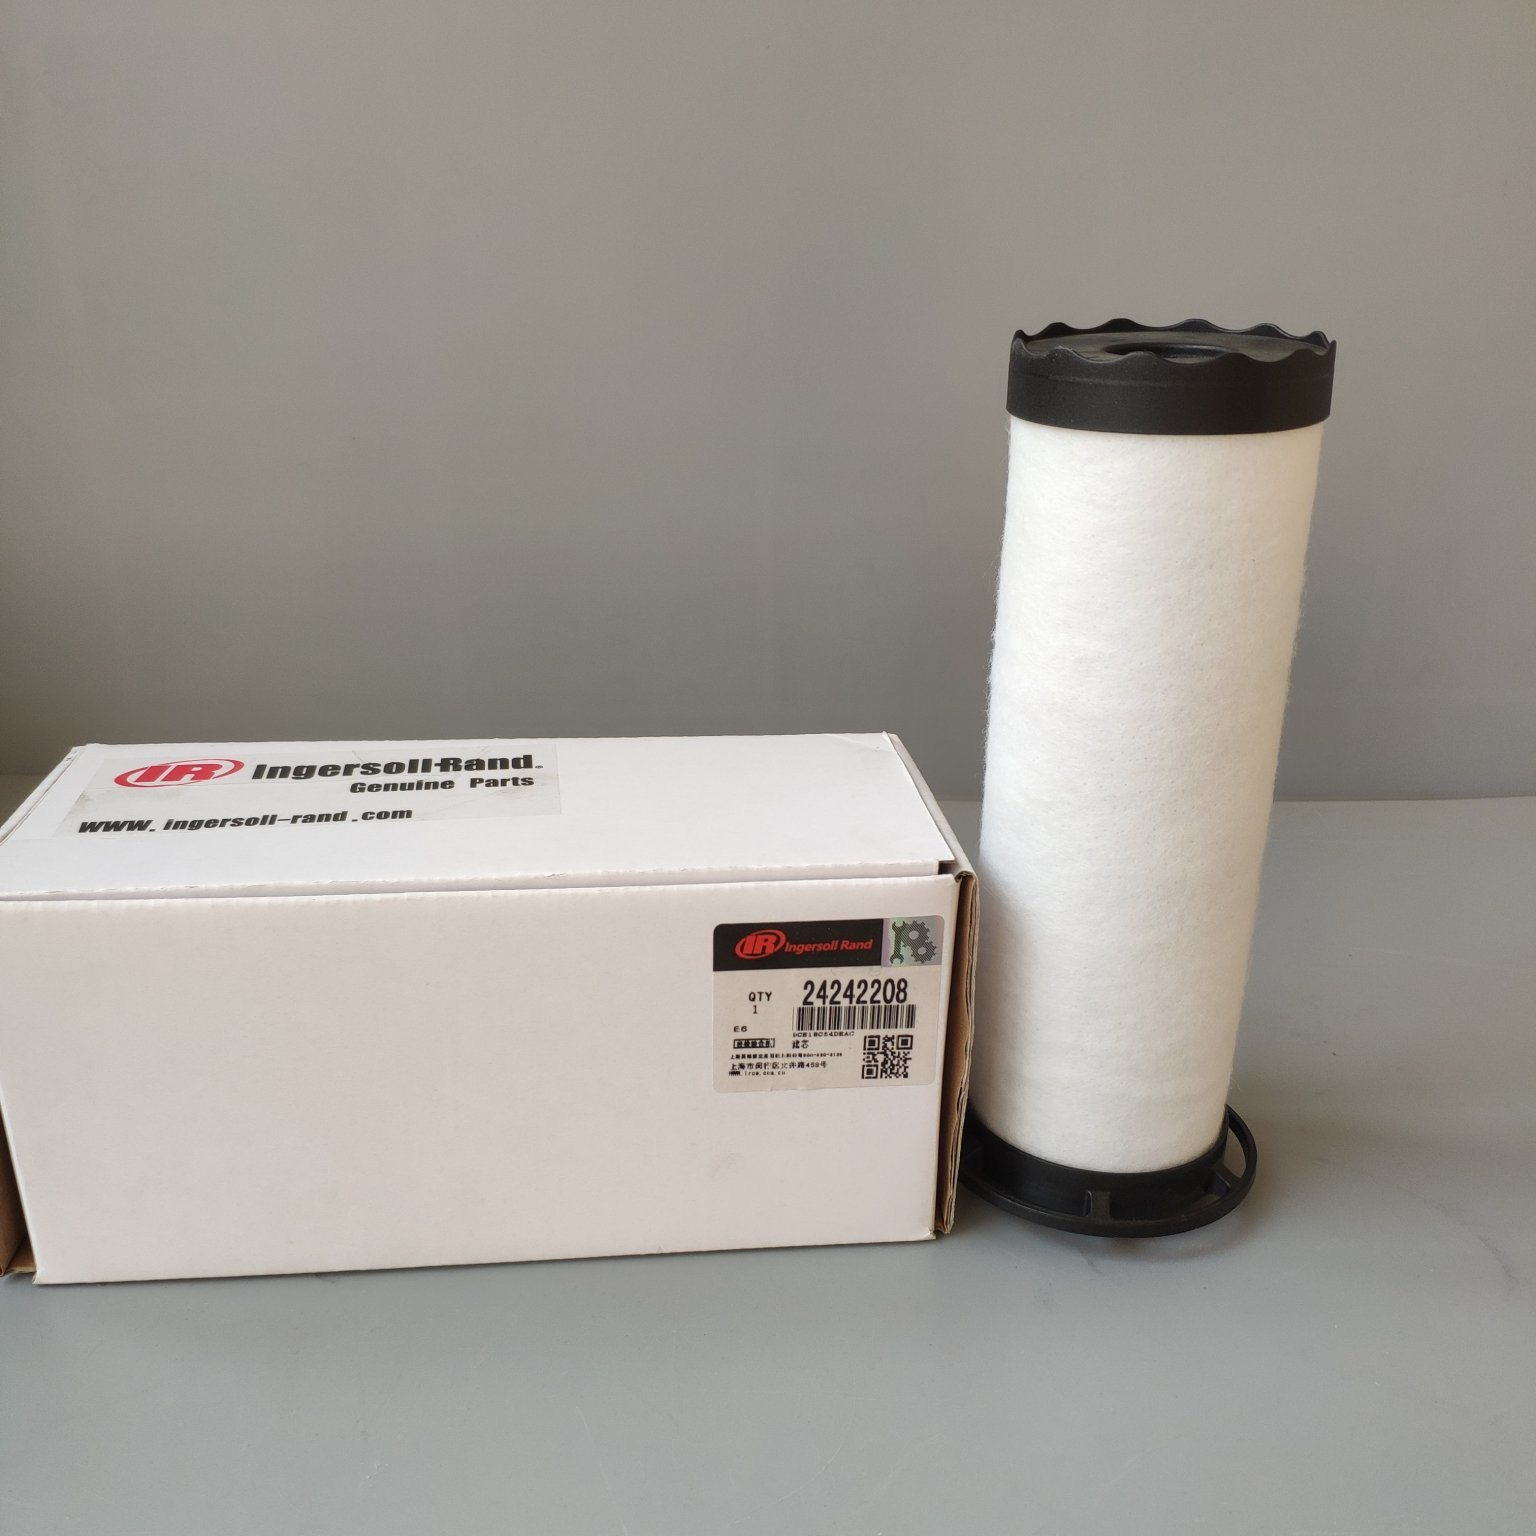 24242208 Ingersoll Rand Replacement Filter Element OEM Equivalent.